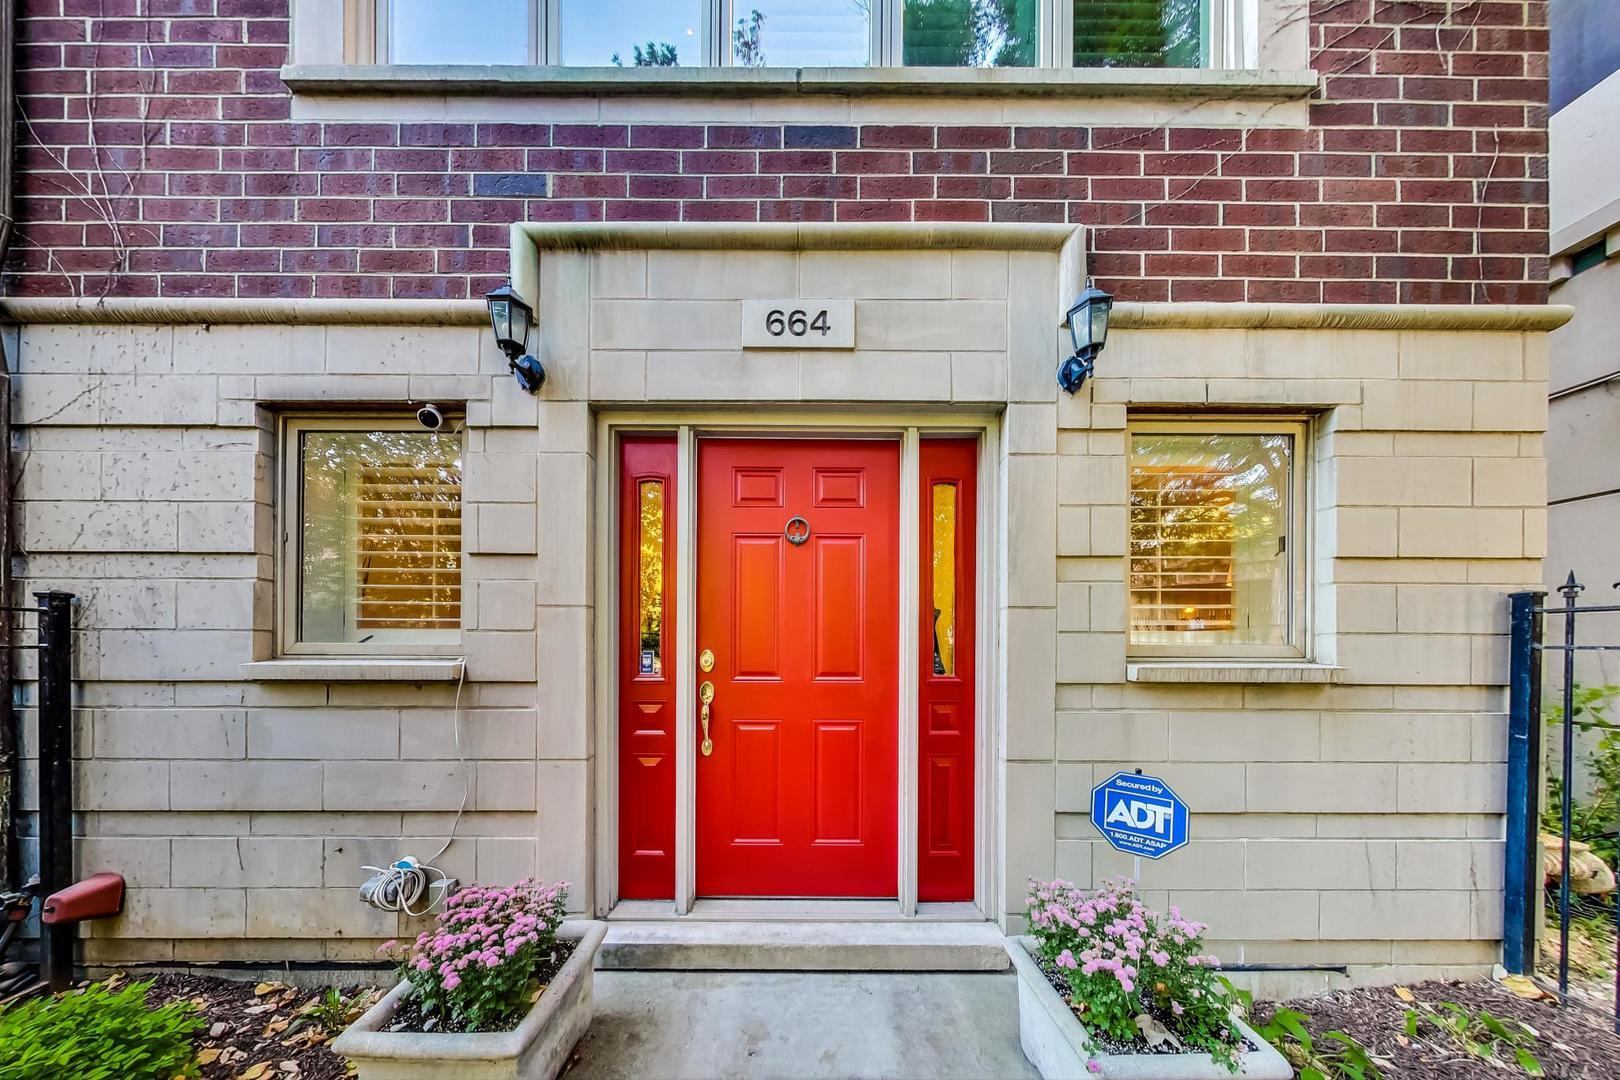 664 N Green Street, Chicago, IL 60622 - #: 10898598